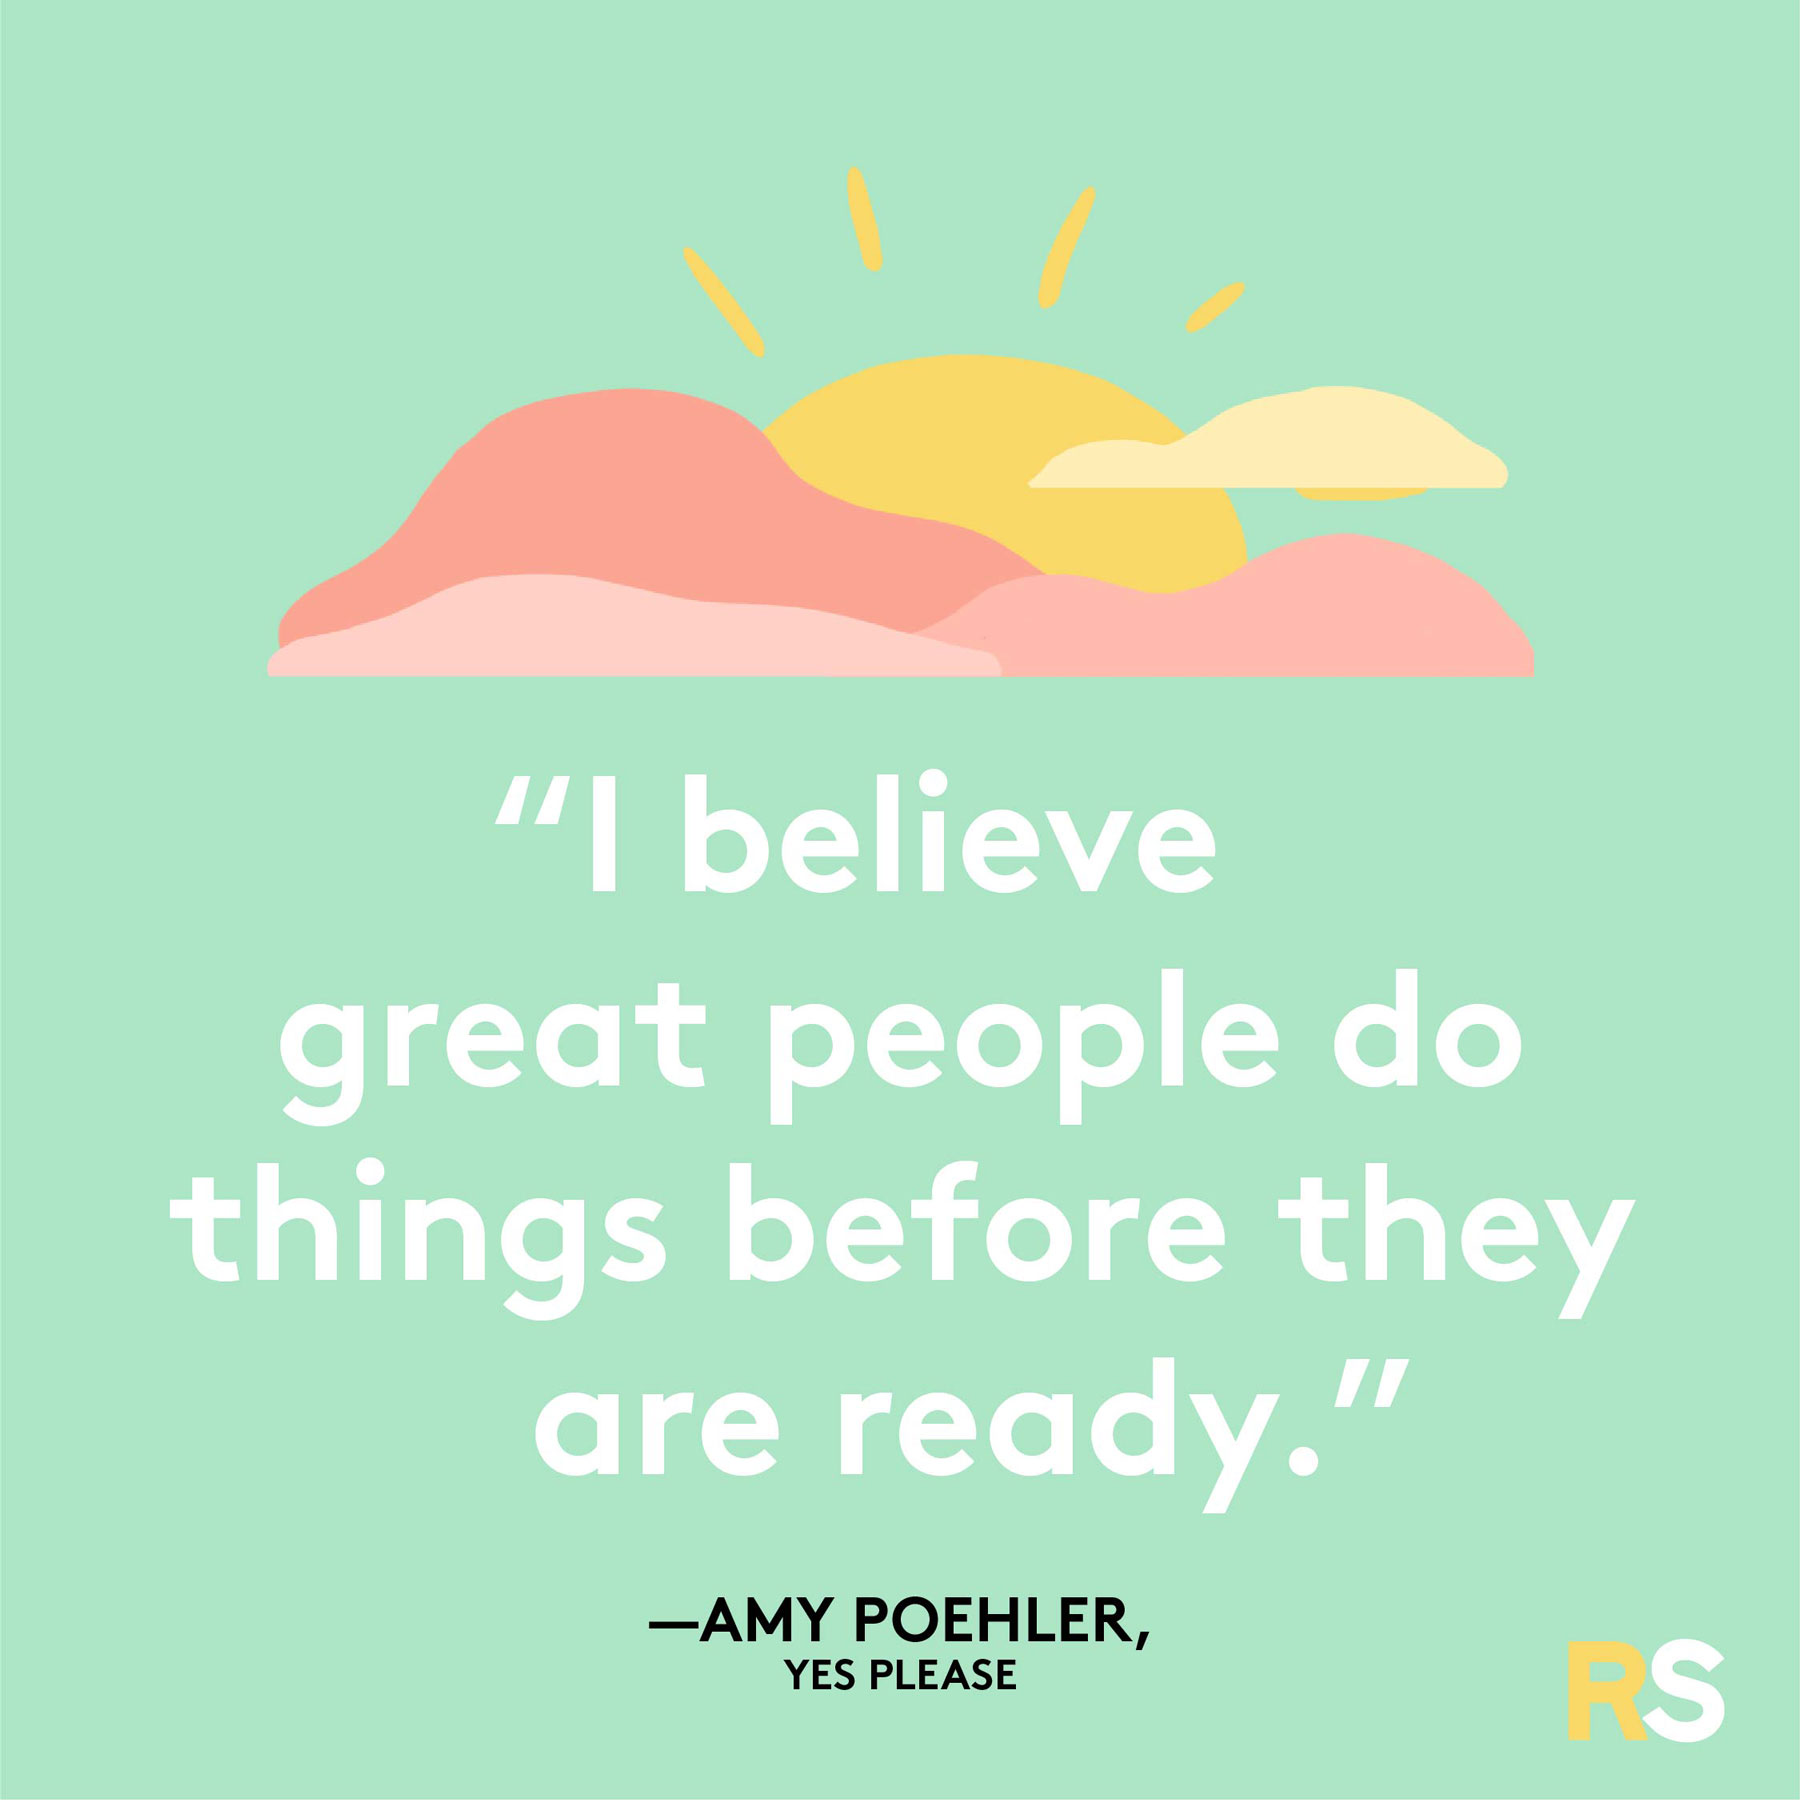 Positive quotes, captions, messages – Amy Poehler, Yes Please